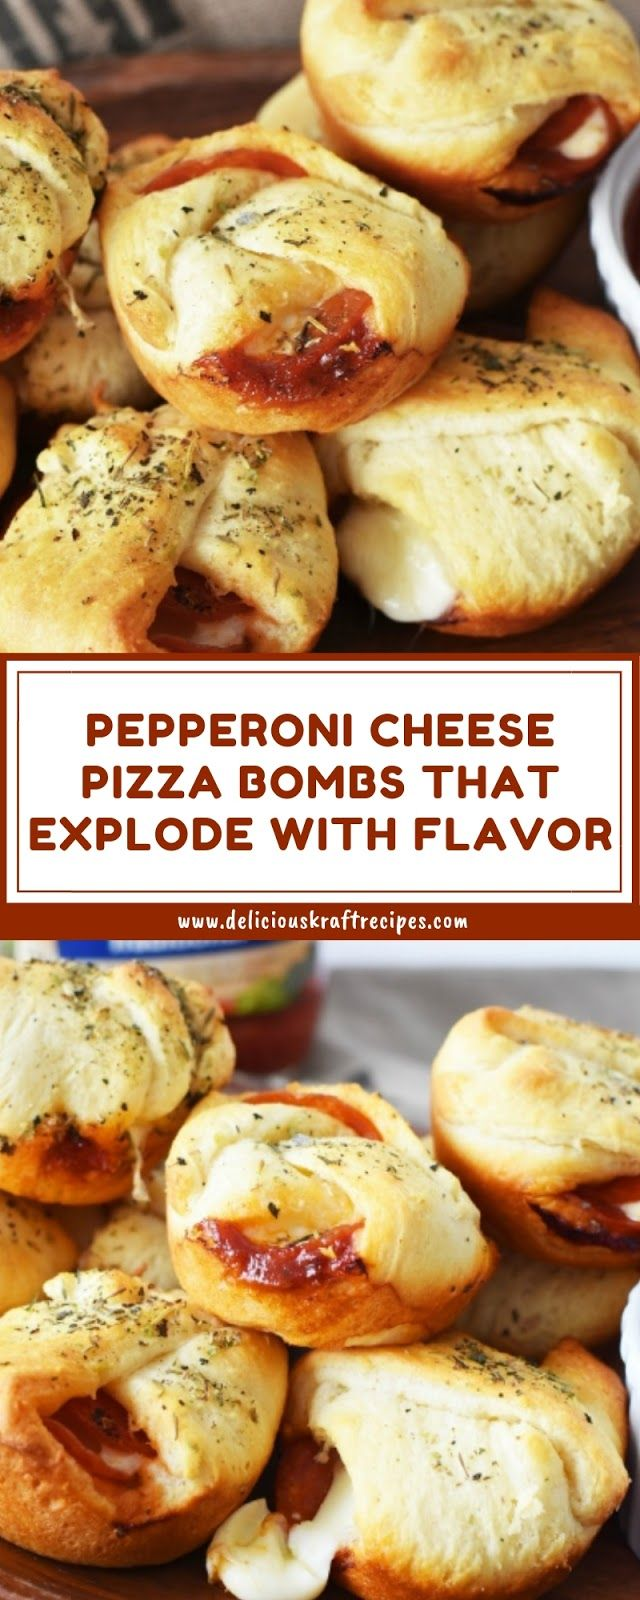 PEPPERONI CHEESE PIZZA BOMBS THAT EXPLODE WITH FLAVOR #cheesepizza